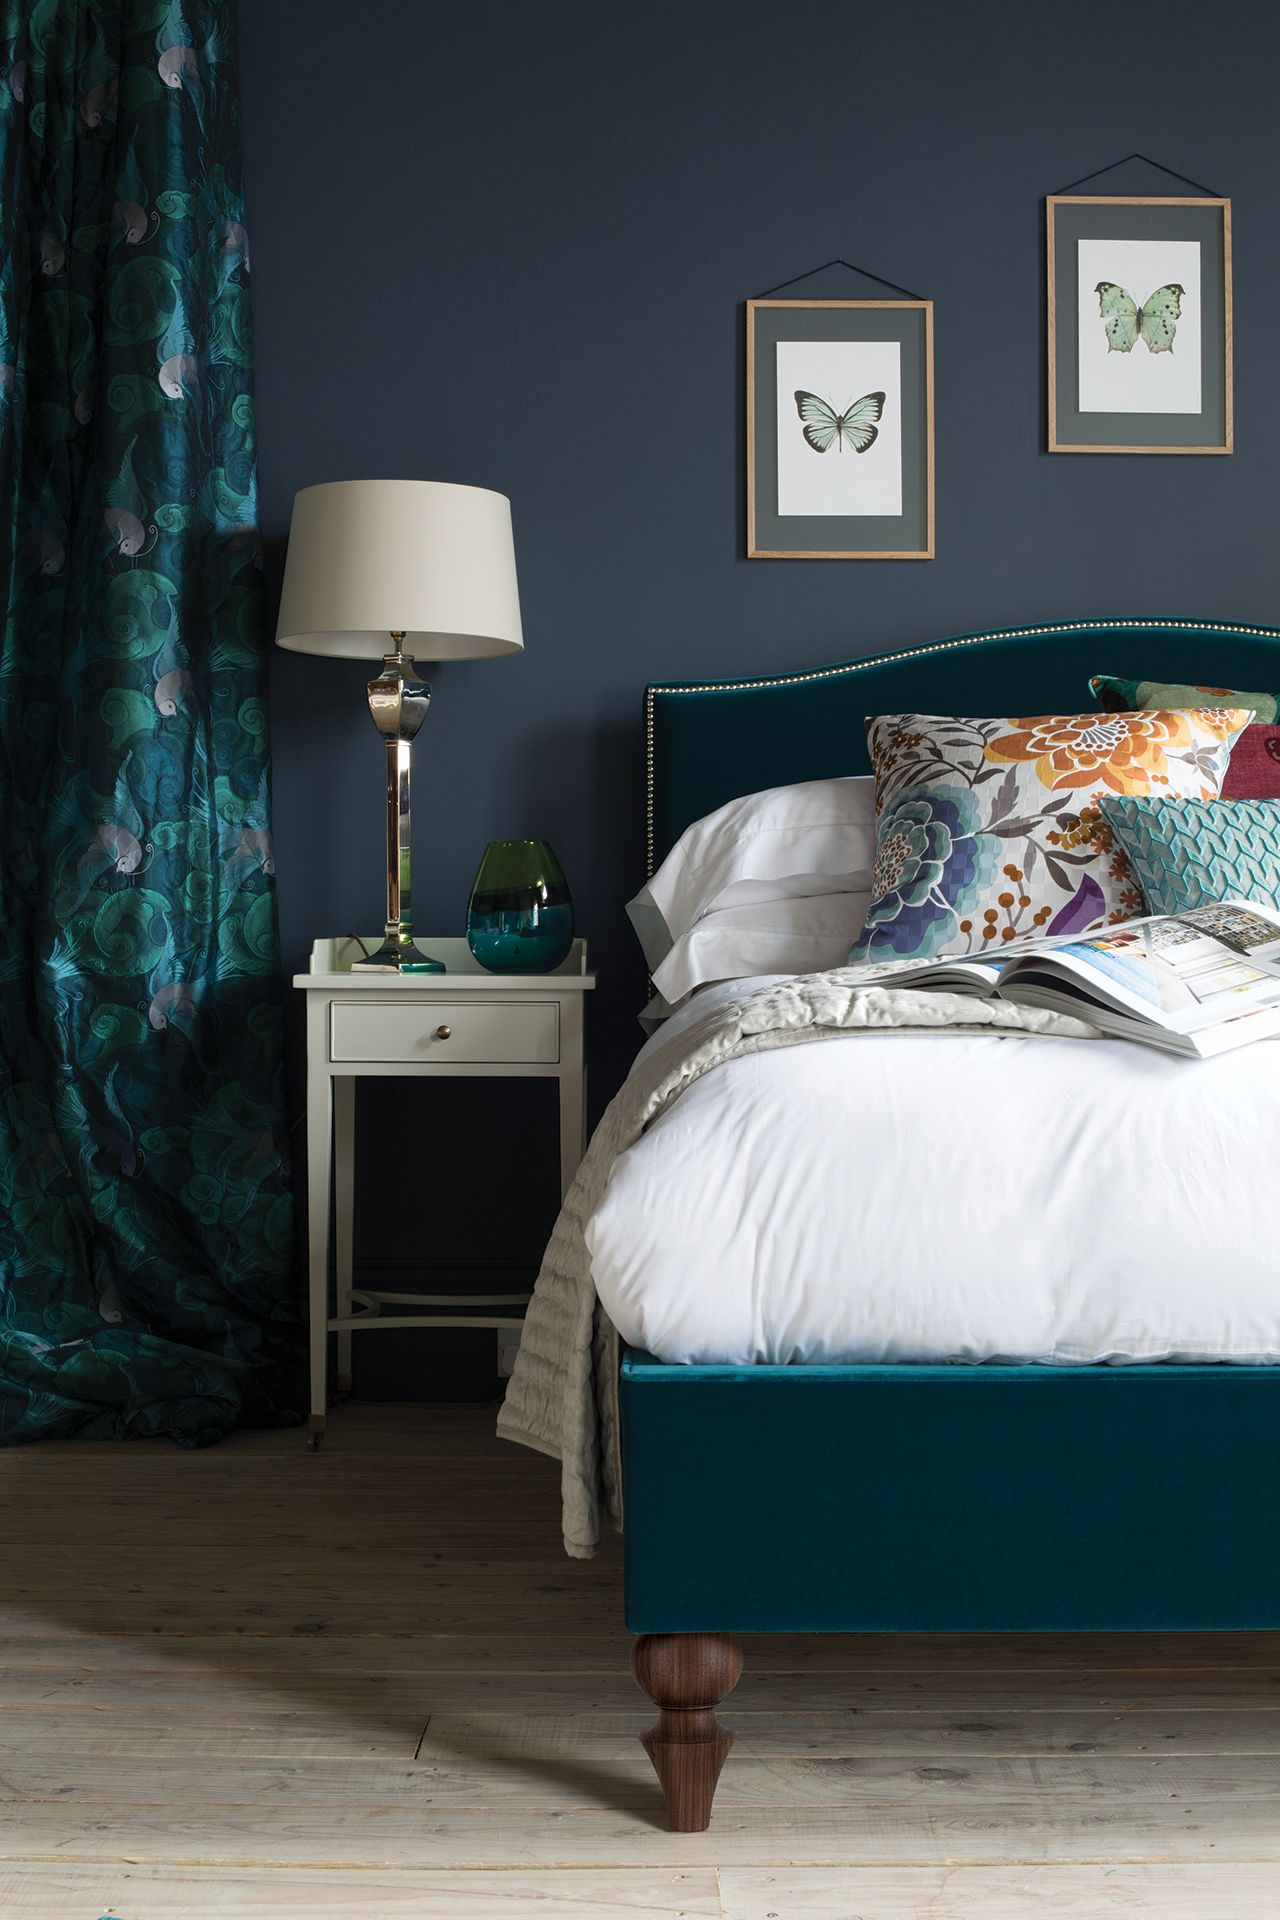 title | Teal And Gray Bedroom Decor